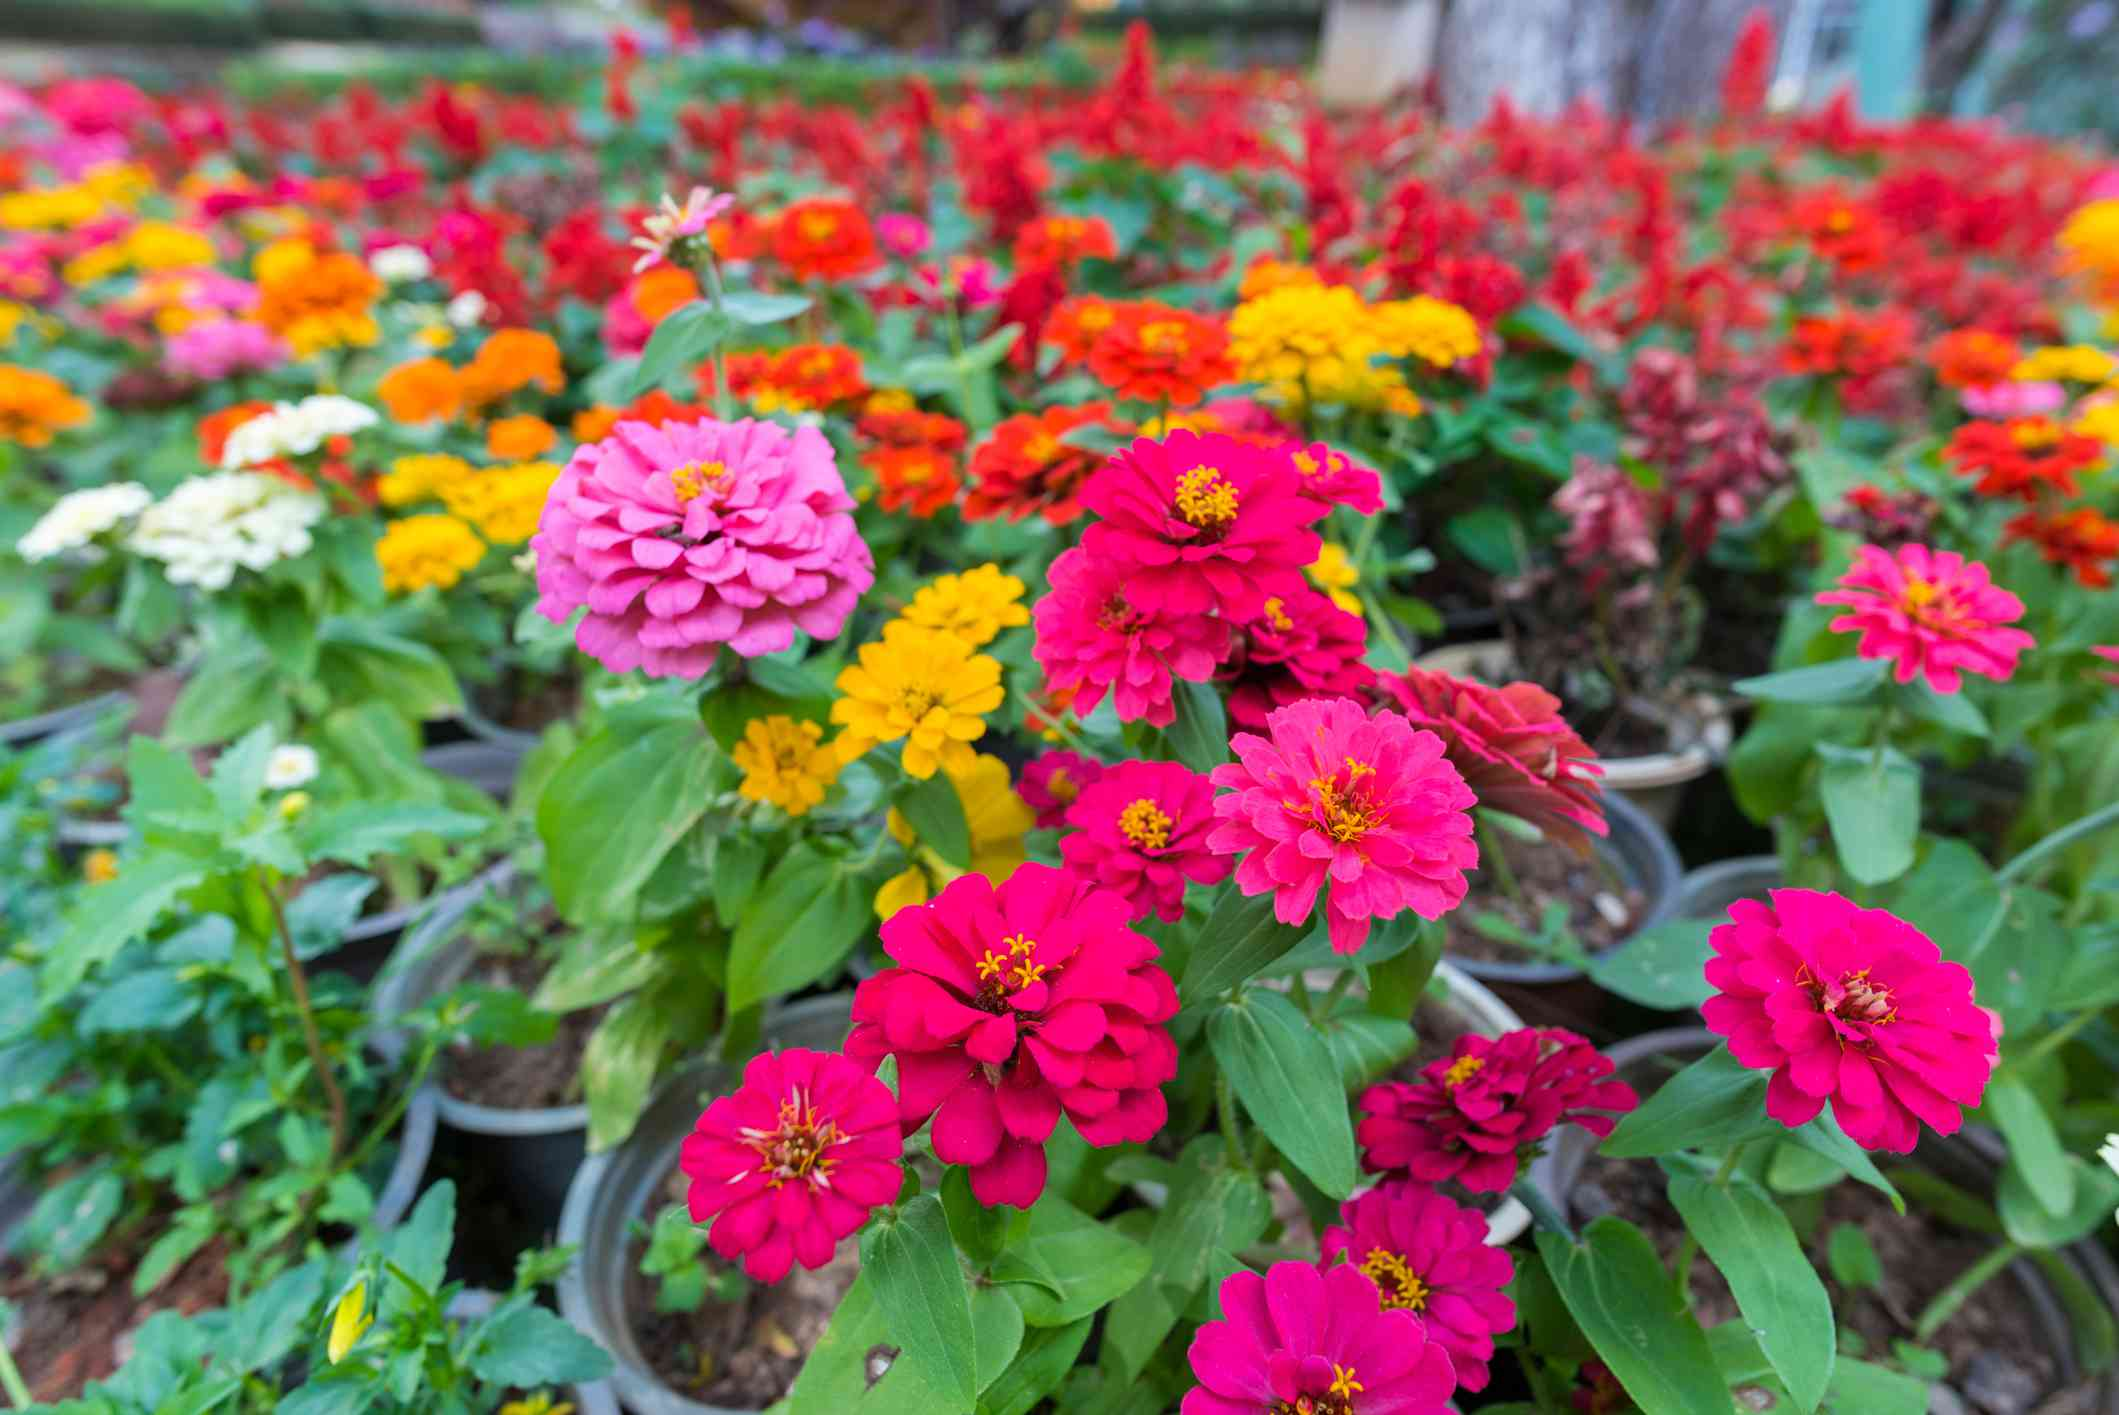 Zinnias in all colors growing in pots outside